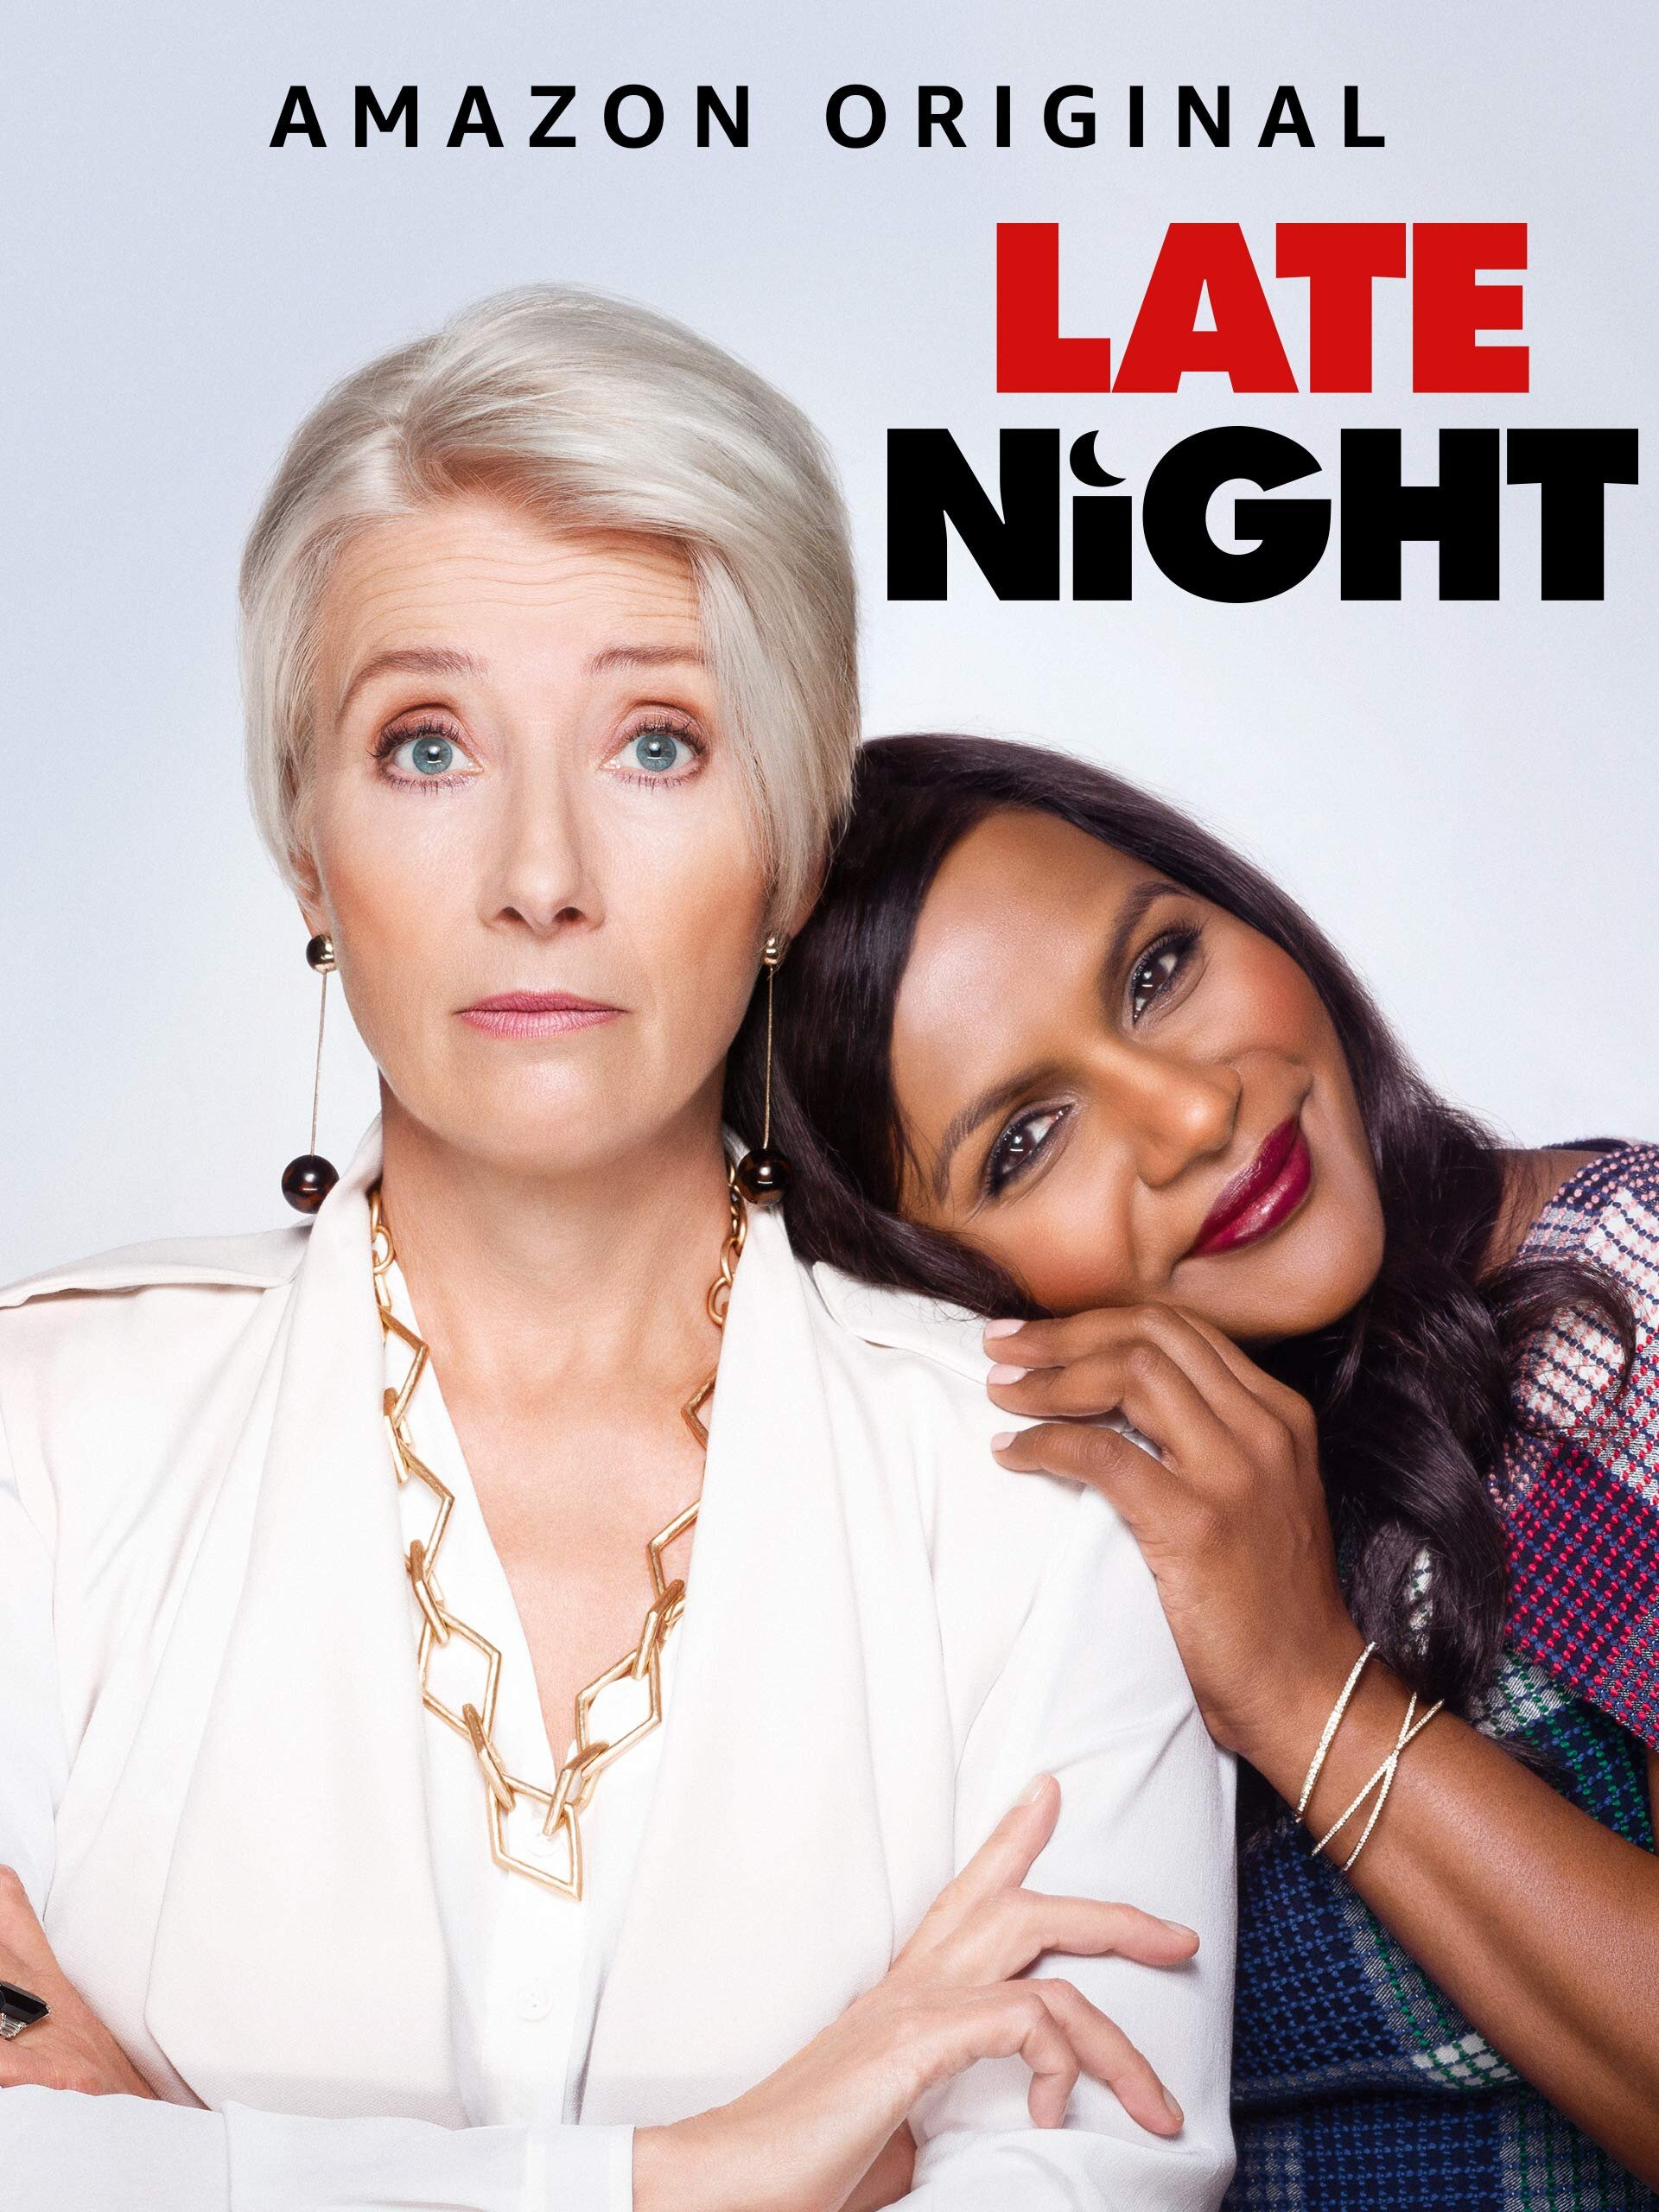 An overbearing a boss. An unbearable white-bro culture. An idealistic and talented young woman trying to embrace the job of her dreams. How to survive – and thrive – in that toxic work environment is the plot of   Late Night  , the movie starring  Mindy Kaling  and Emma Thompson that's now available on Amazon Prime.